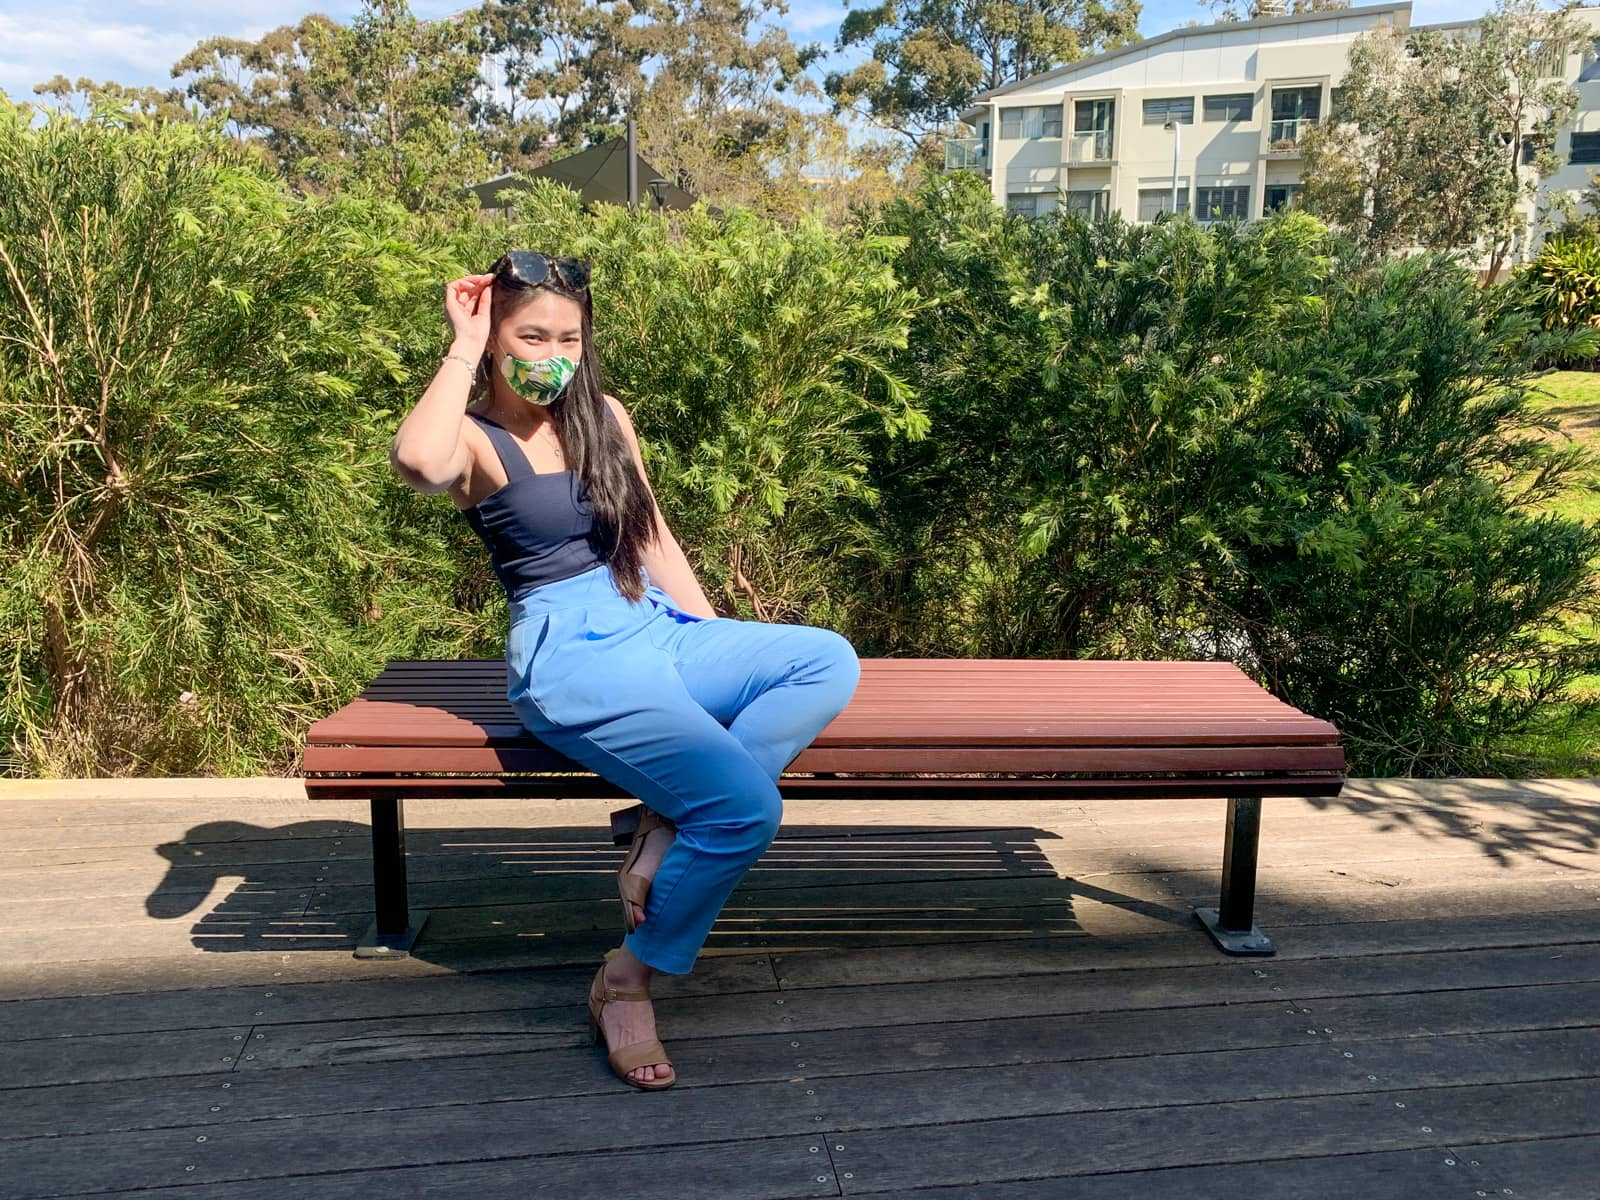 The same woman in other photos on this page, wearing the same clothes. She is sitting on a wooden bench, leaning back a little, with her ankles crossed at the ground beneath the bench. She is holding onto her sunglasses on top of her head